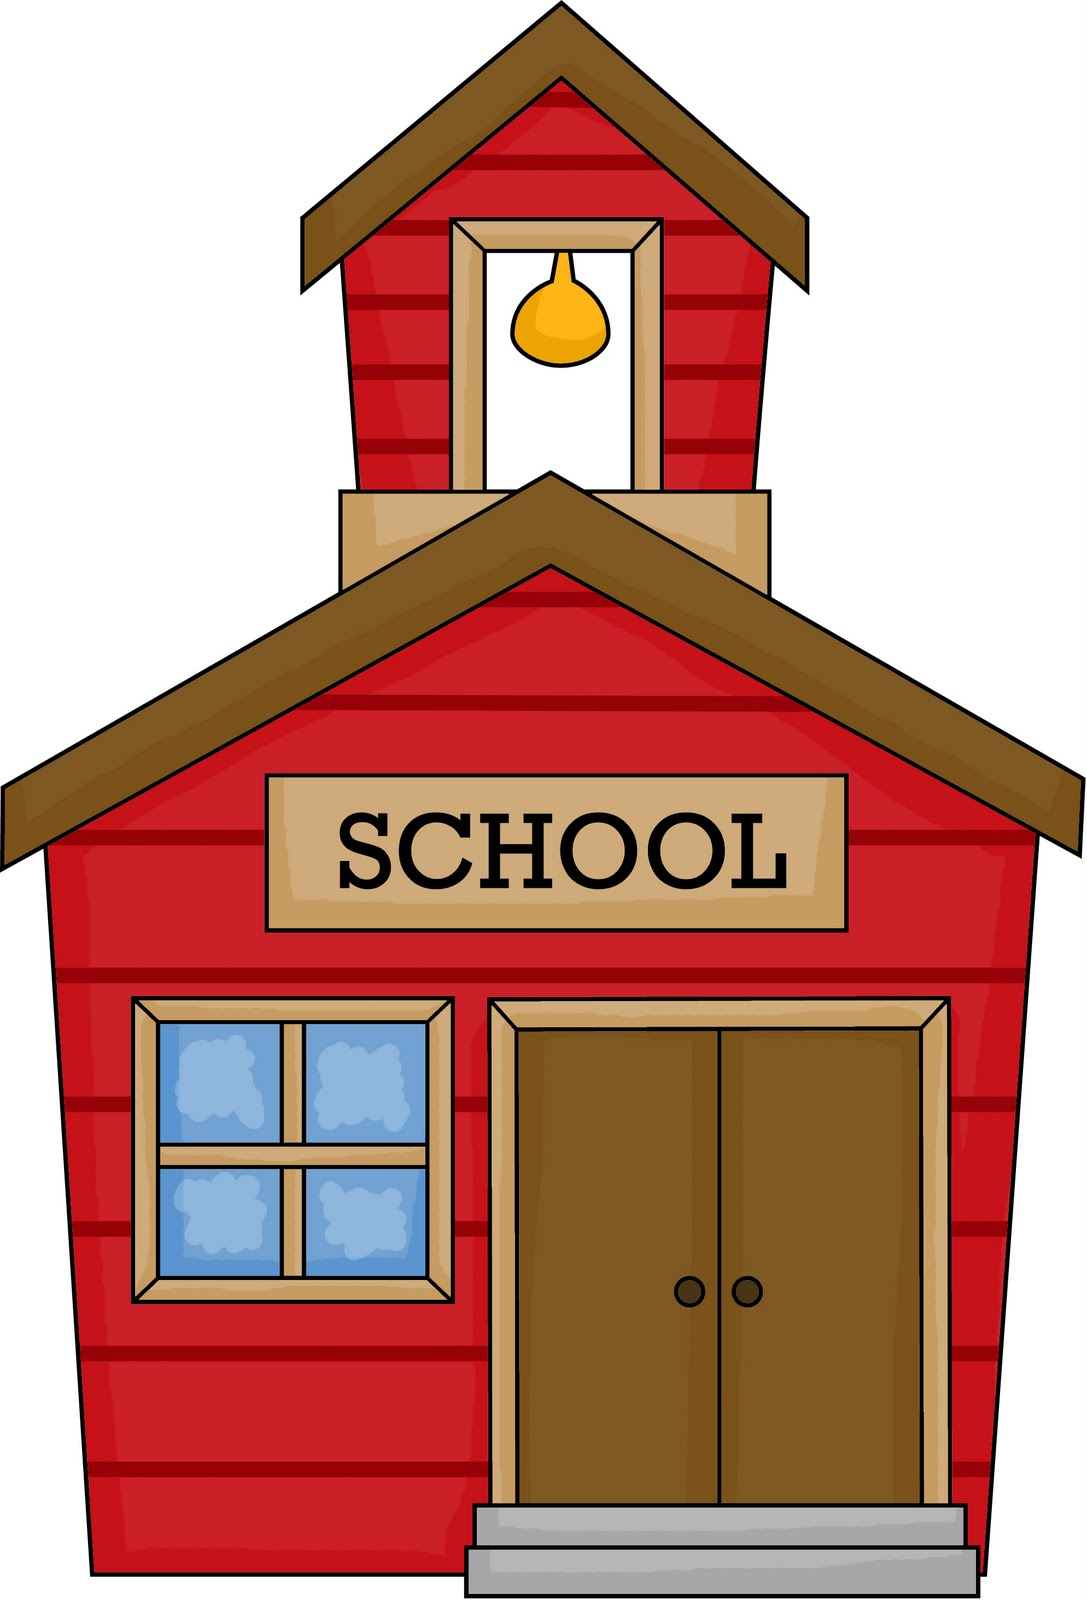 school house images